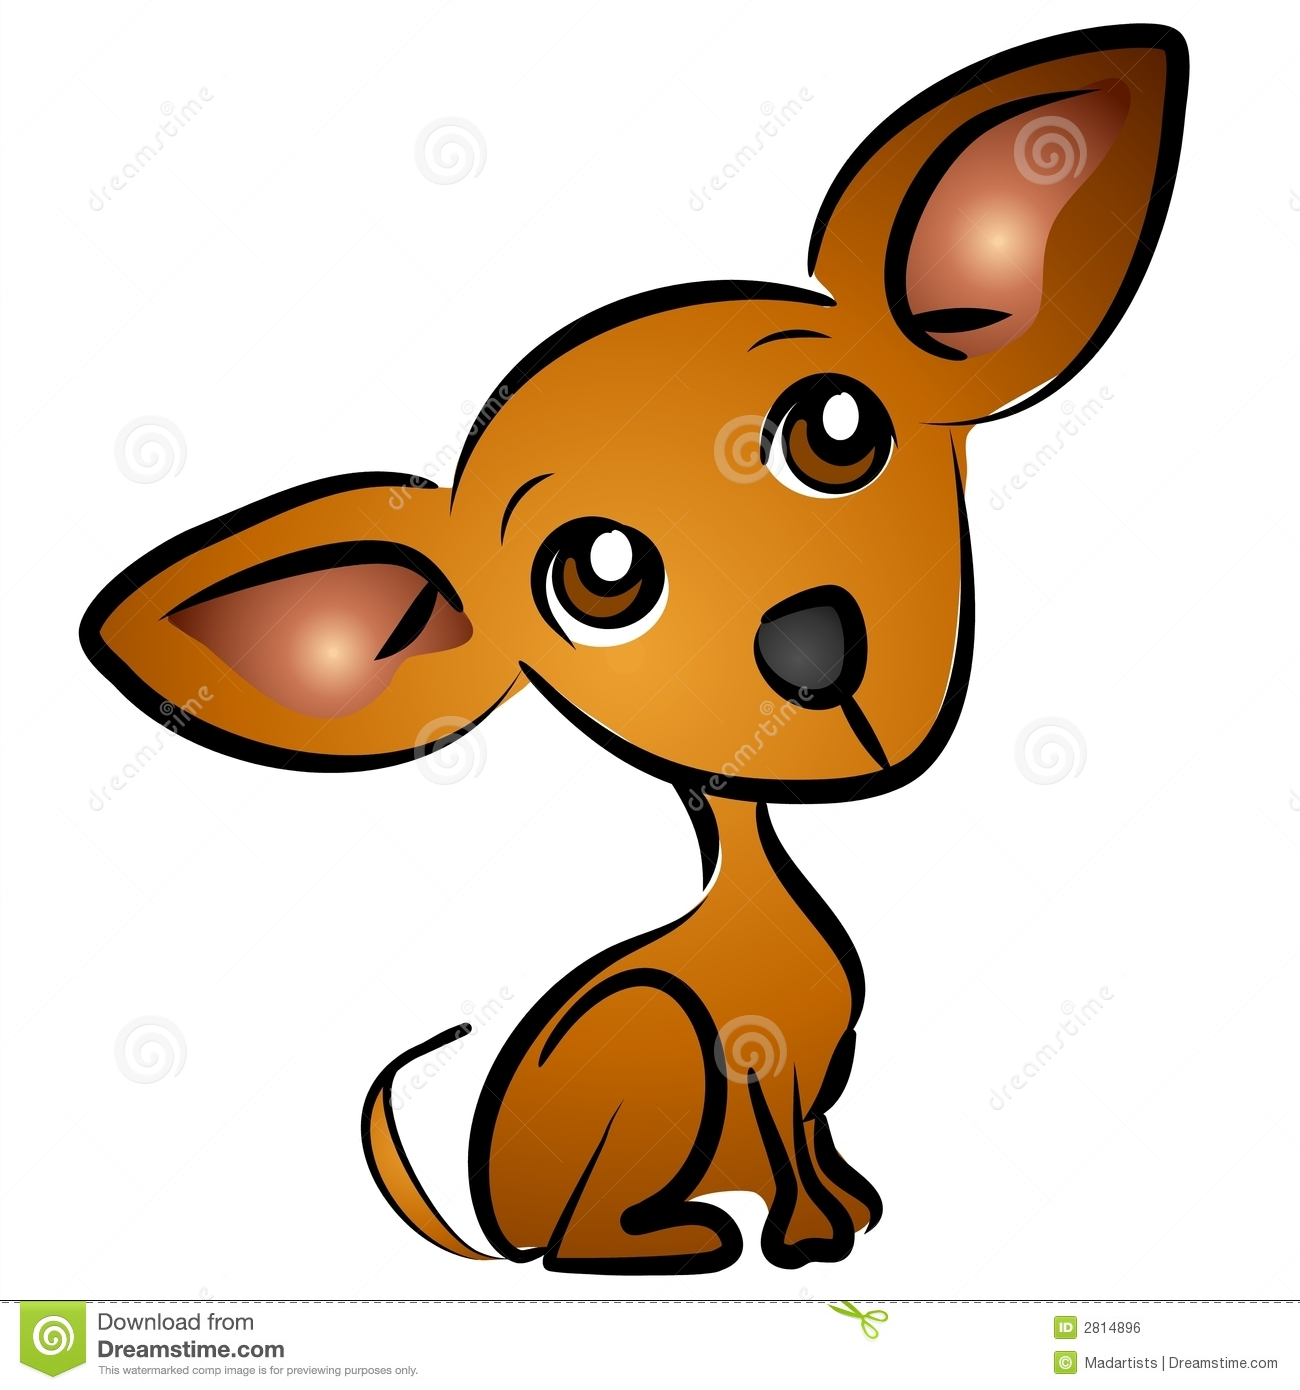 small brown chihuahua dog cartoon clip art illustration with classic